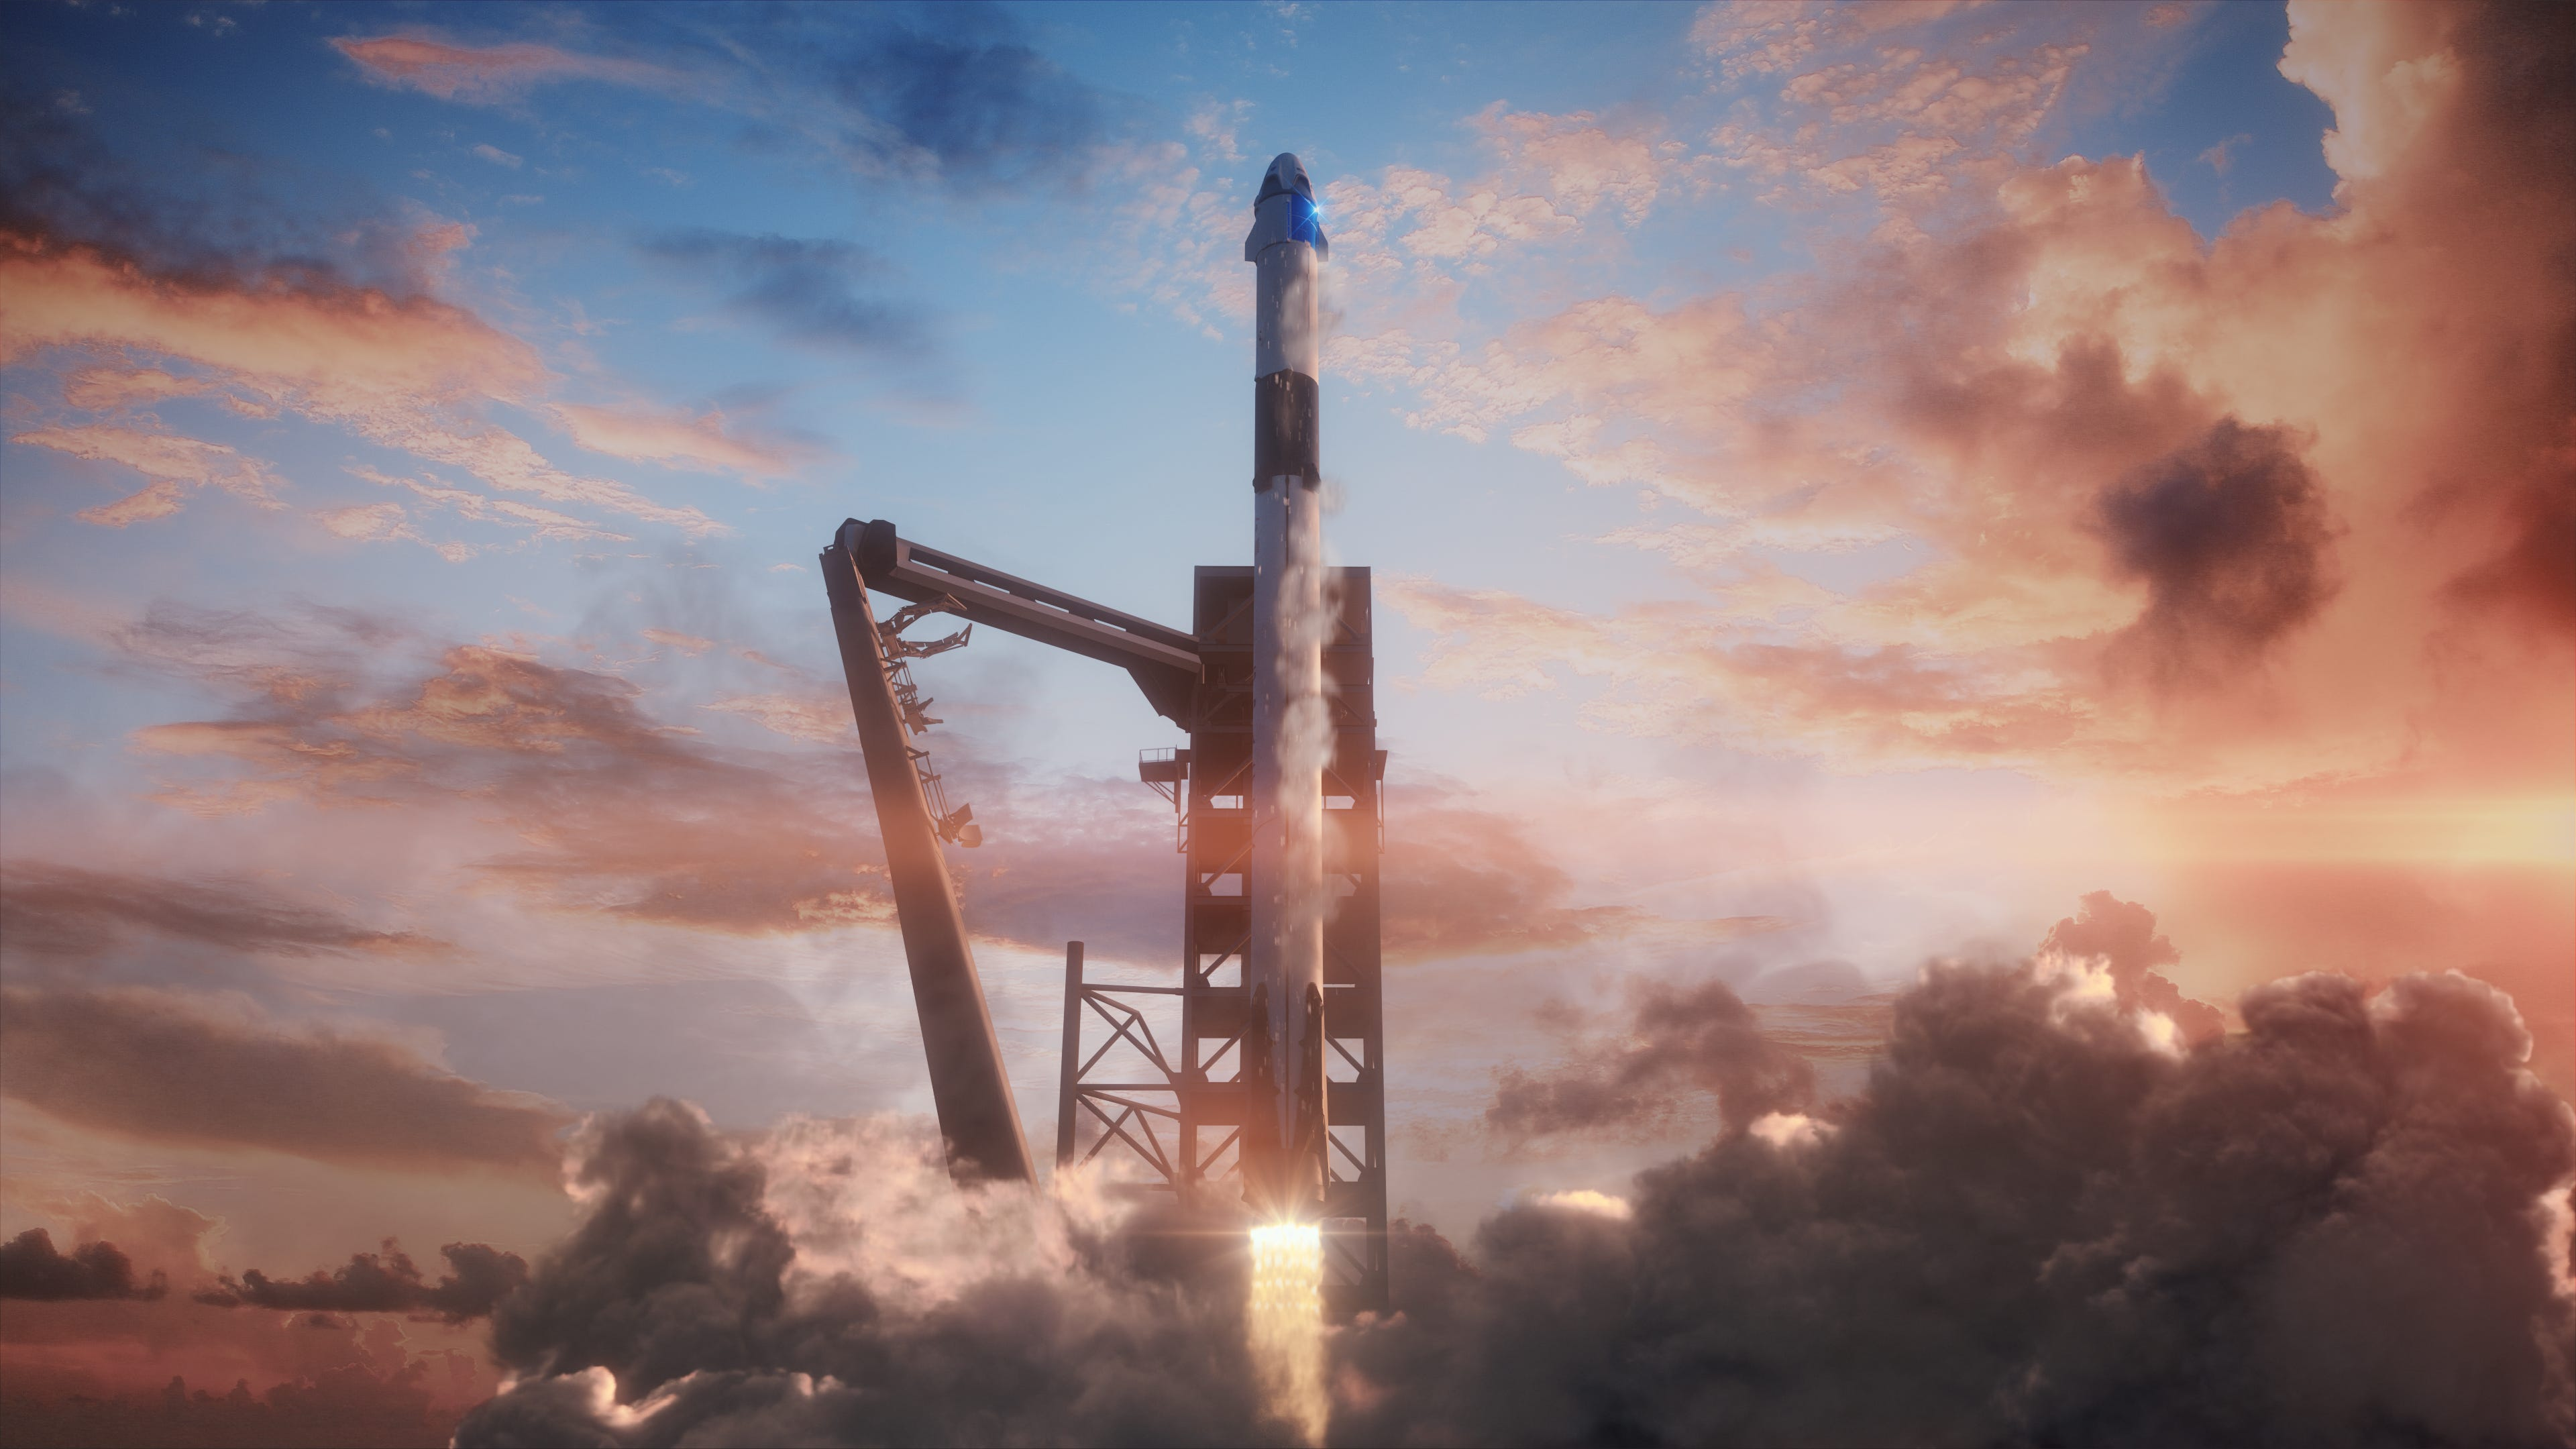 Illustration of SpaceX's Crew Dragon spacecraft launching atop a Falcon 9 rocket from Kennedy Space Center's pad 39A.